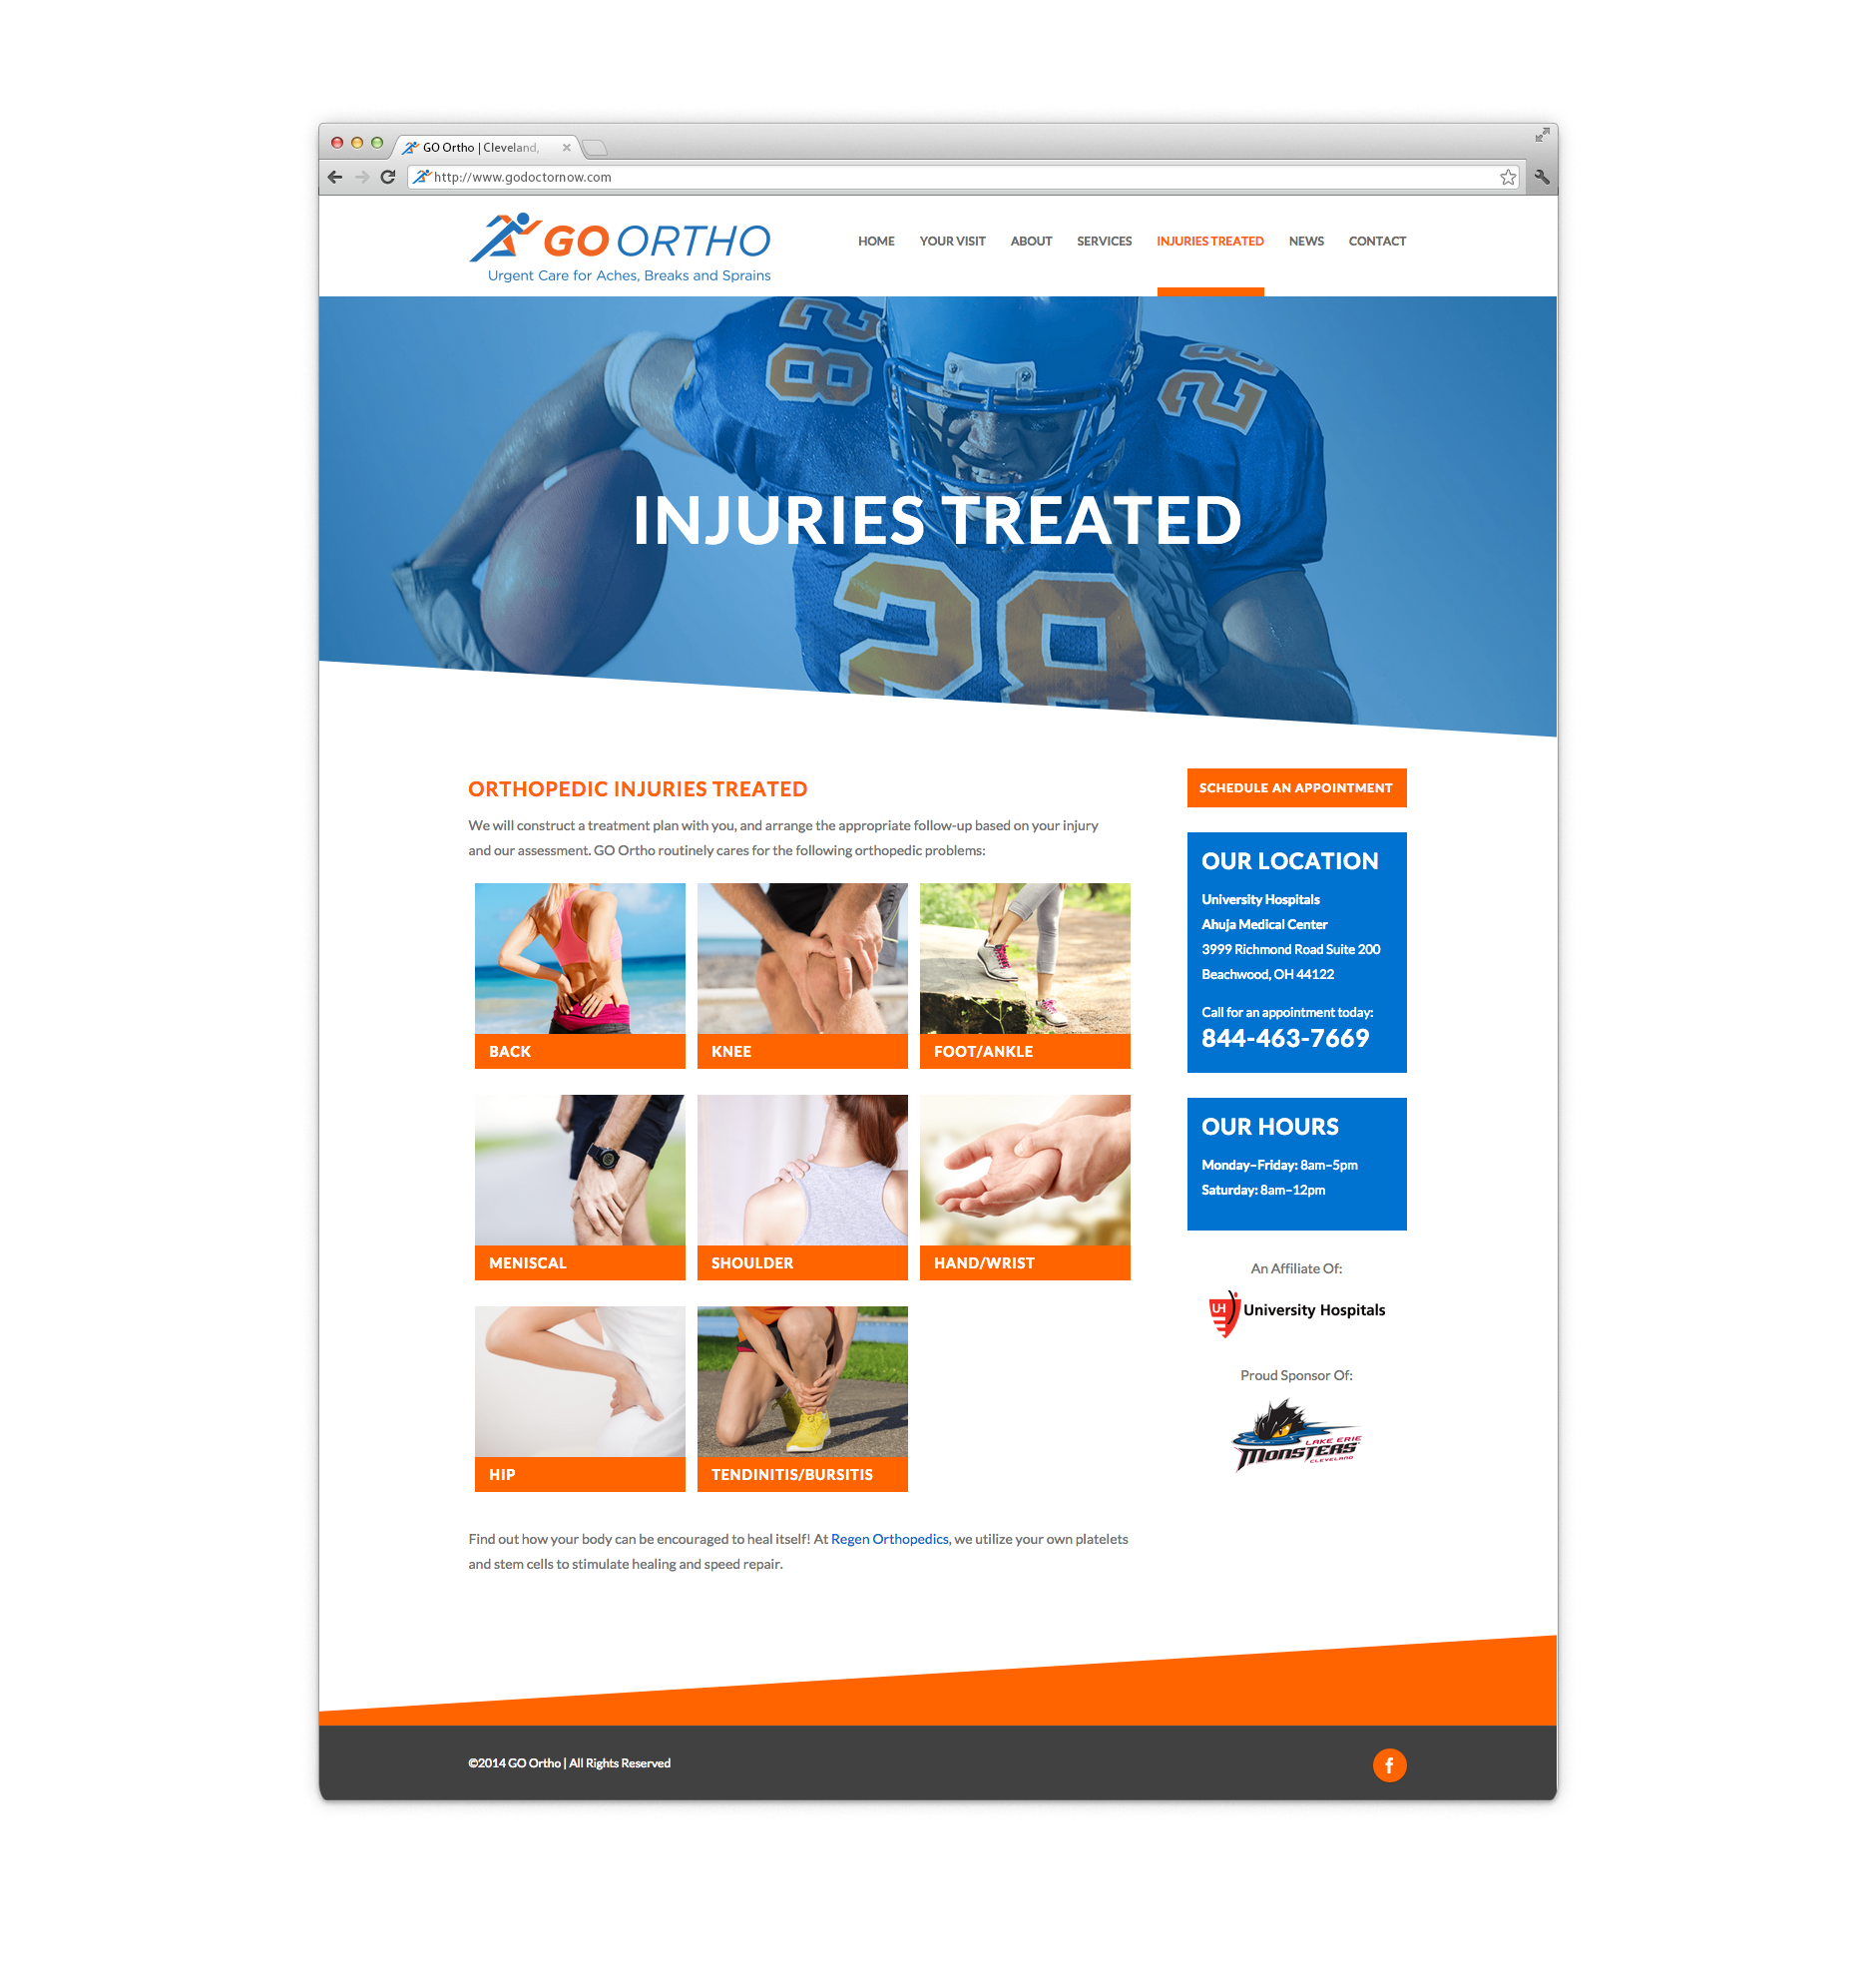 GO Ortho - Injuries Treated Page Design | Health Care Branding